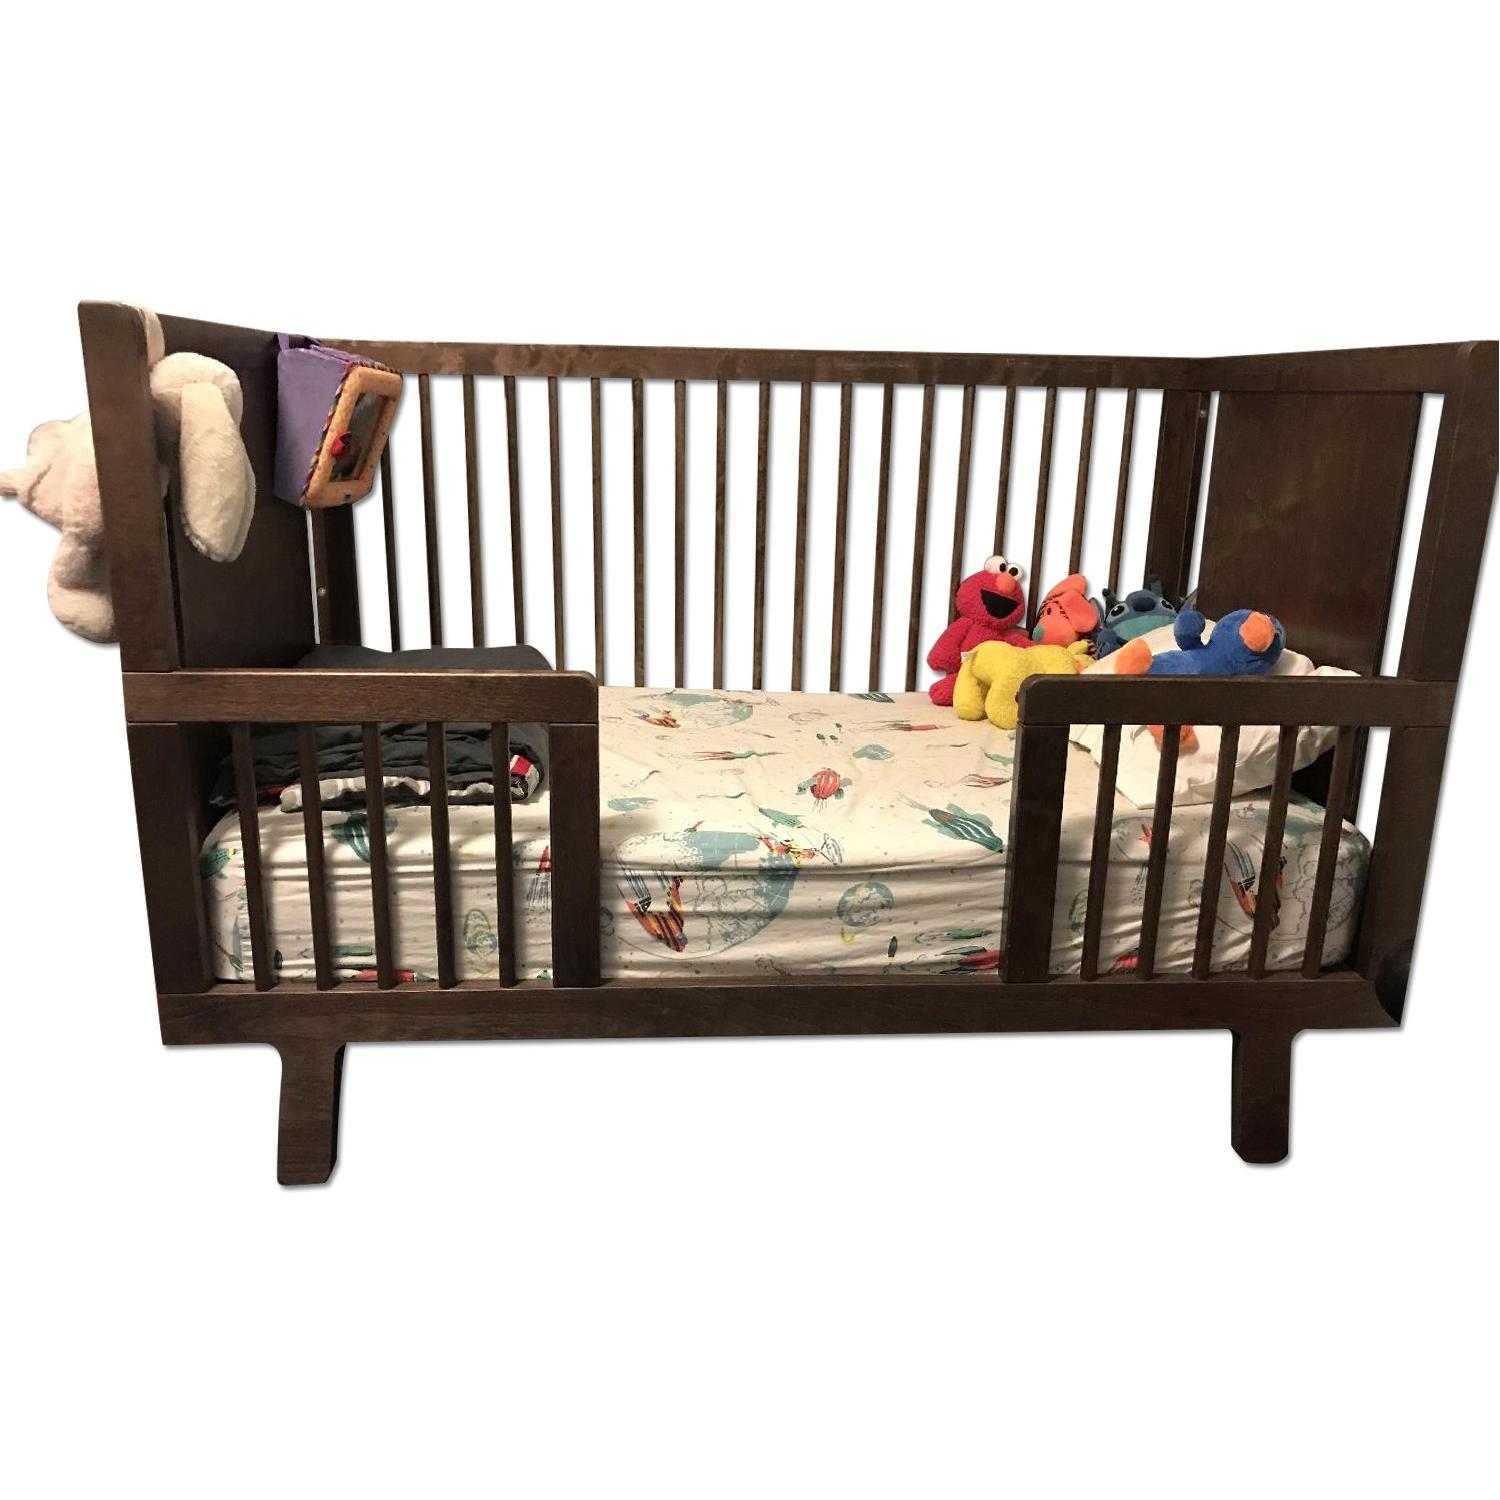 Ouef Sparrow Crib & Toddler Conversion Kit in Walnut - image-0